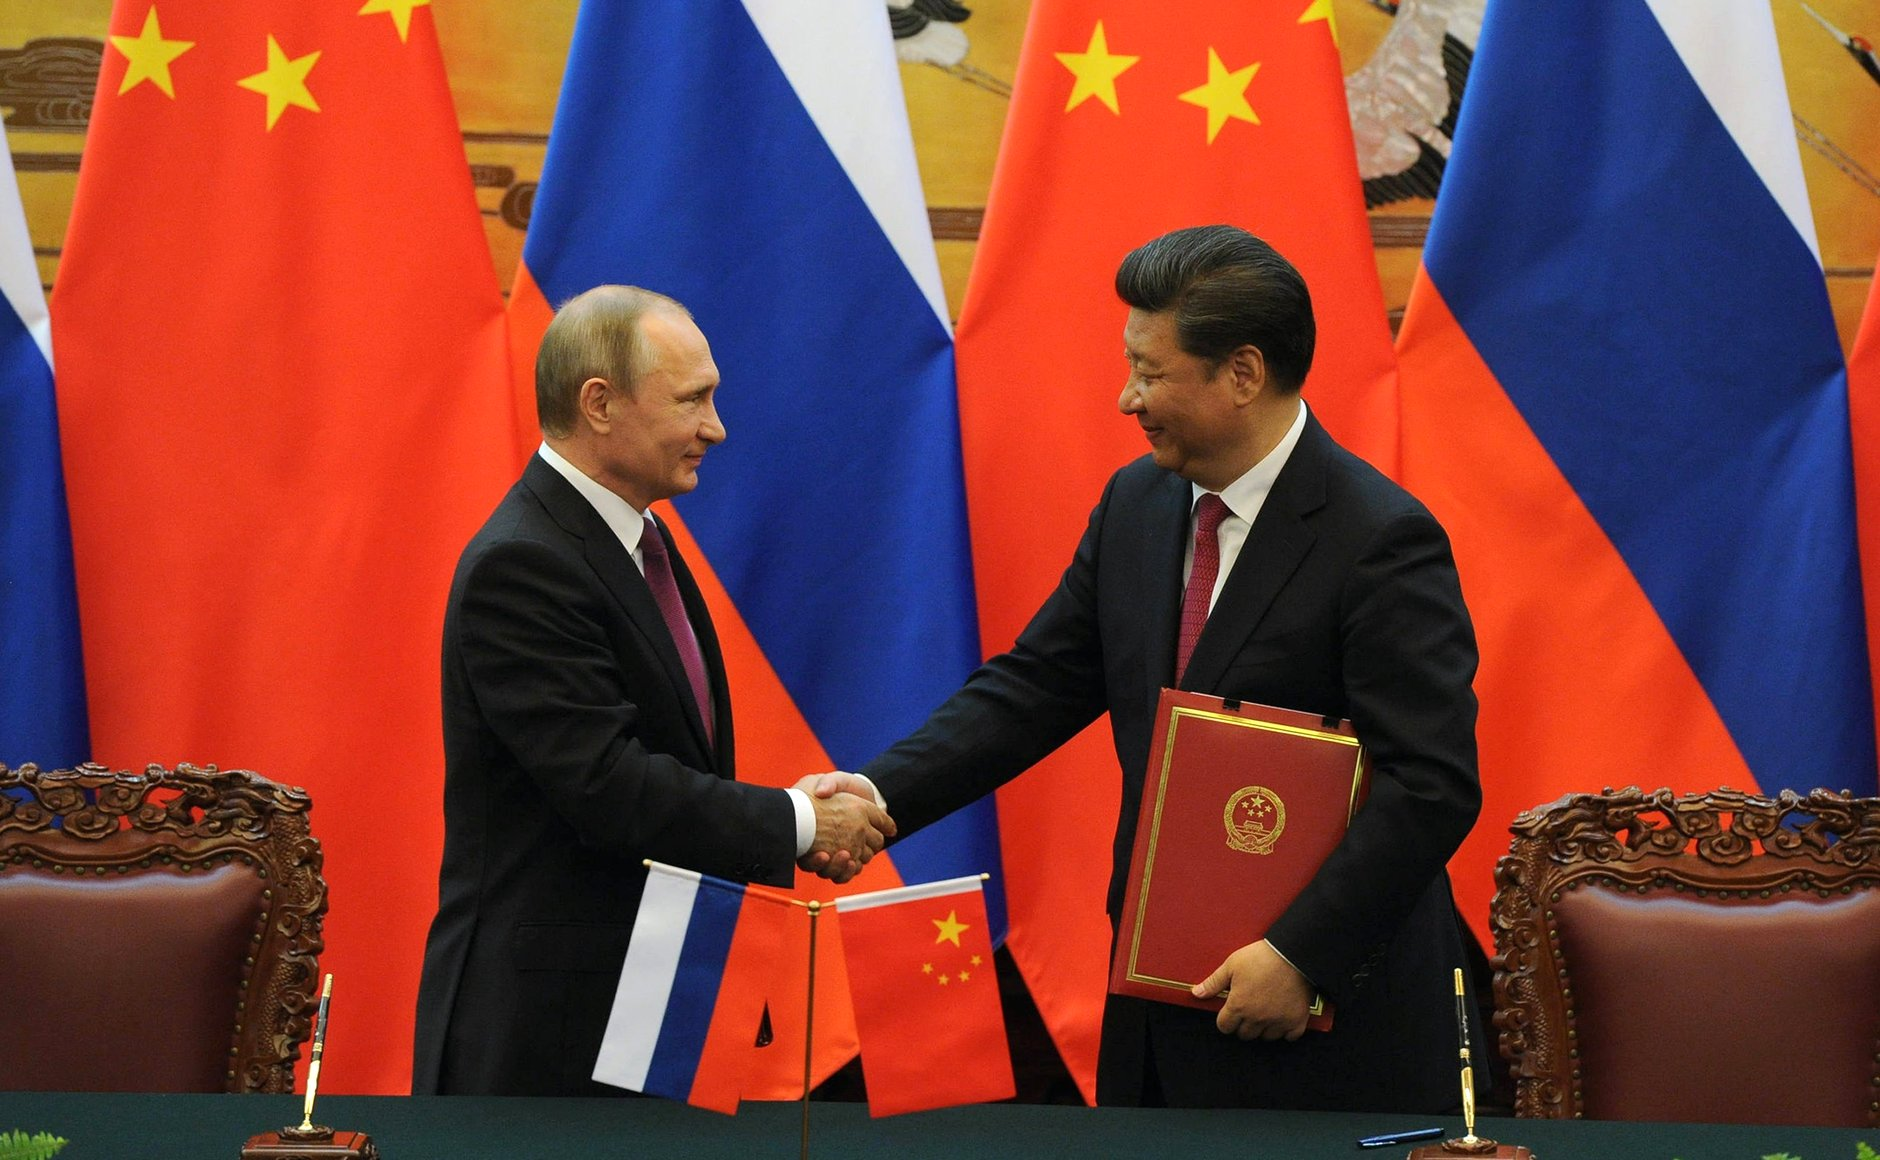 Vladimir Putin (L) and Xi Jinping (R) in Beijing on June 25, 2016.